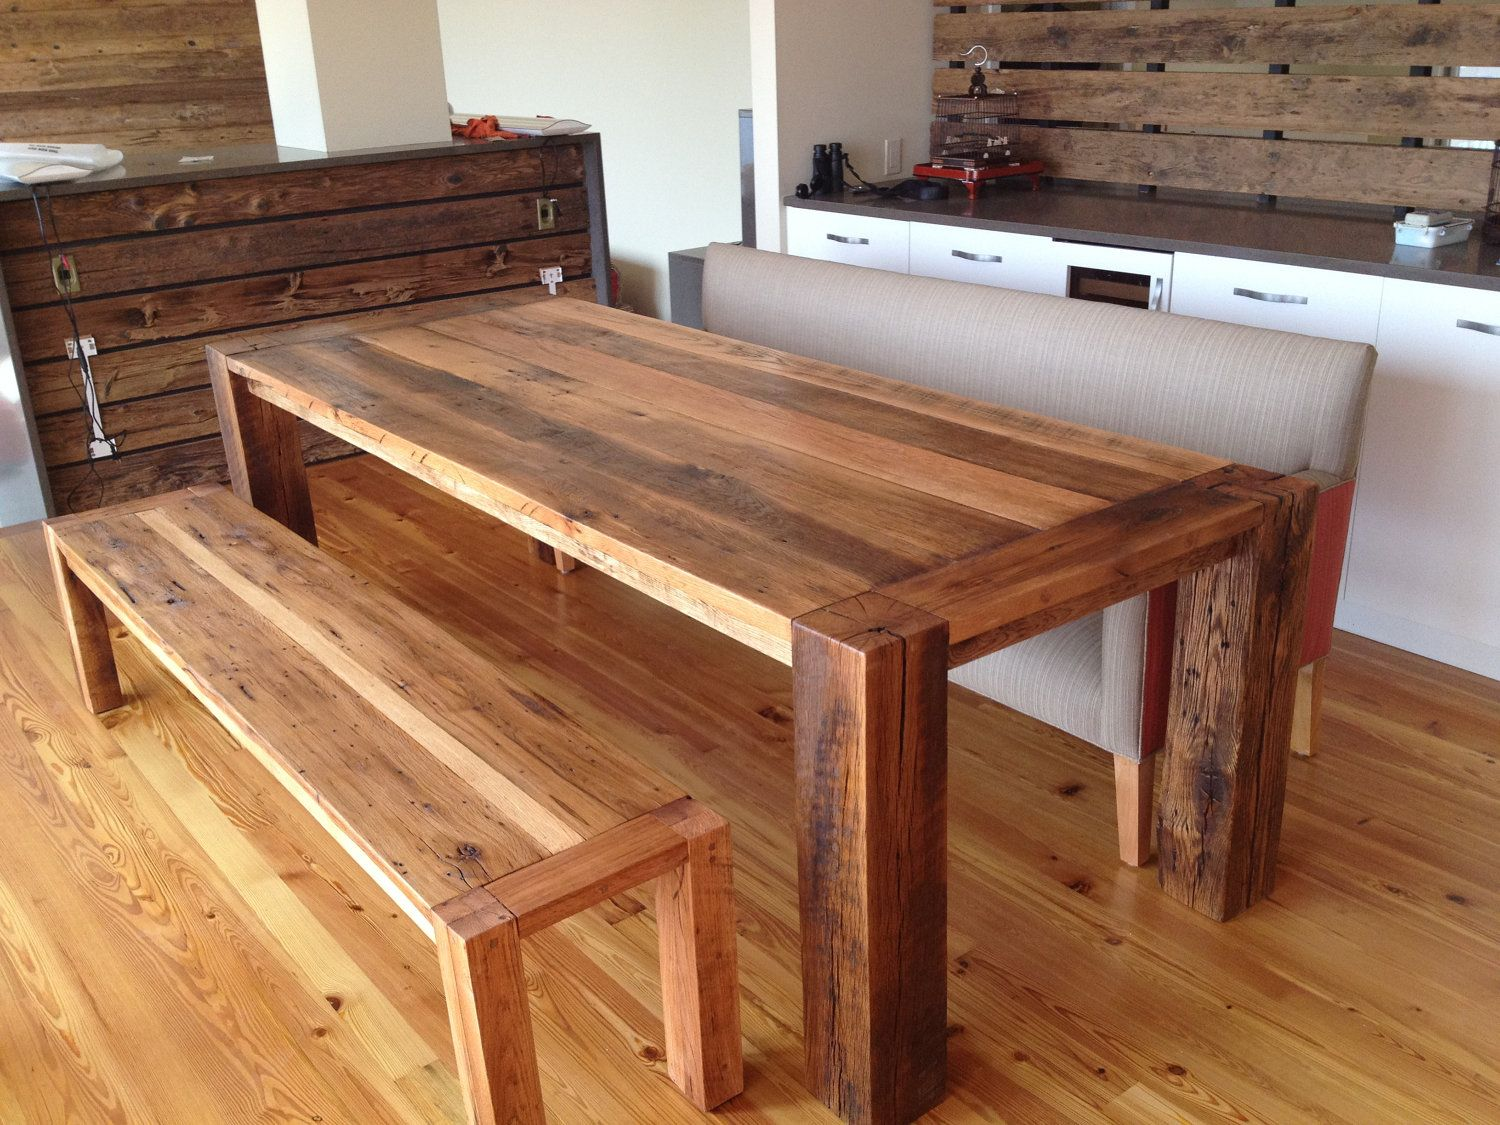 Custom for olivia and george corner spot dining table corner woods and beams - How to make rustic wood furniture ...